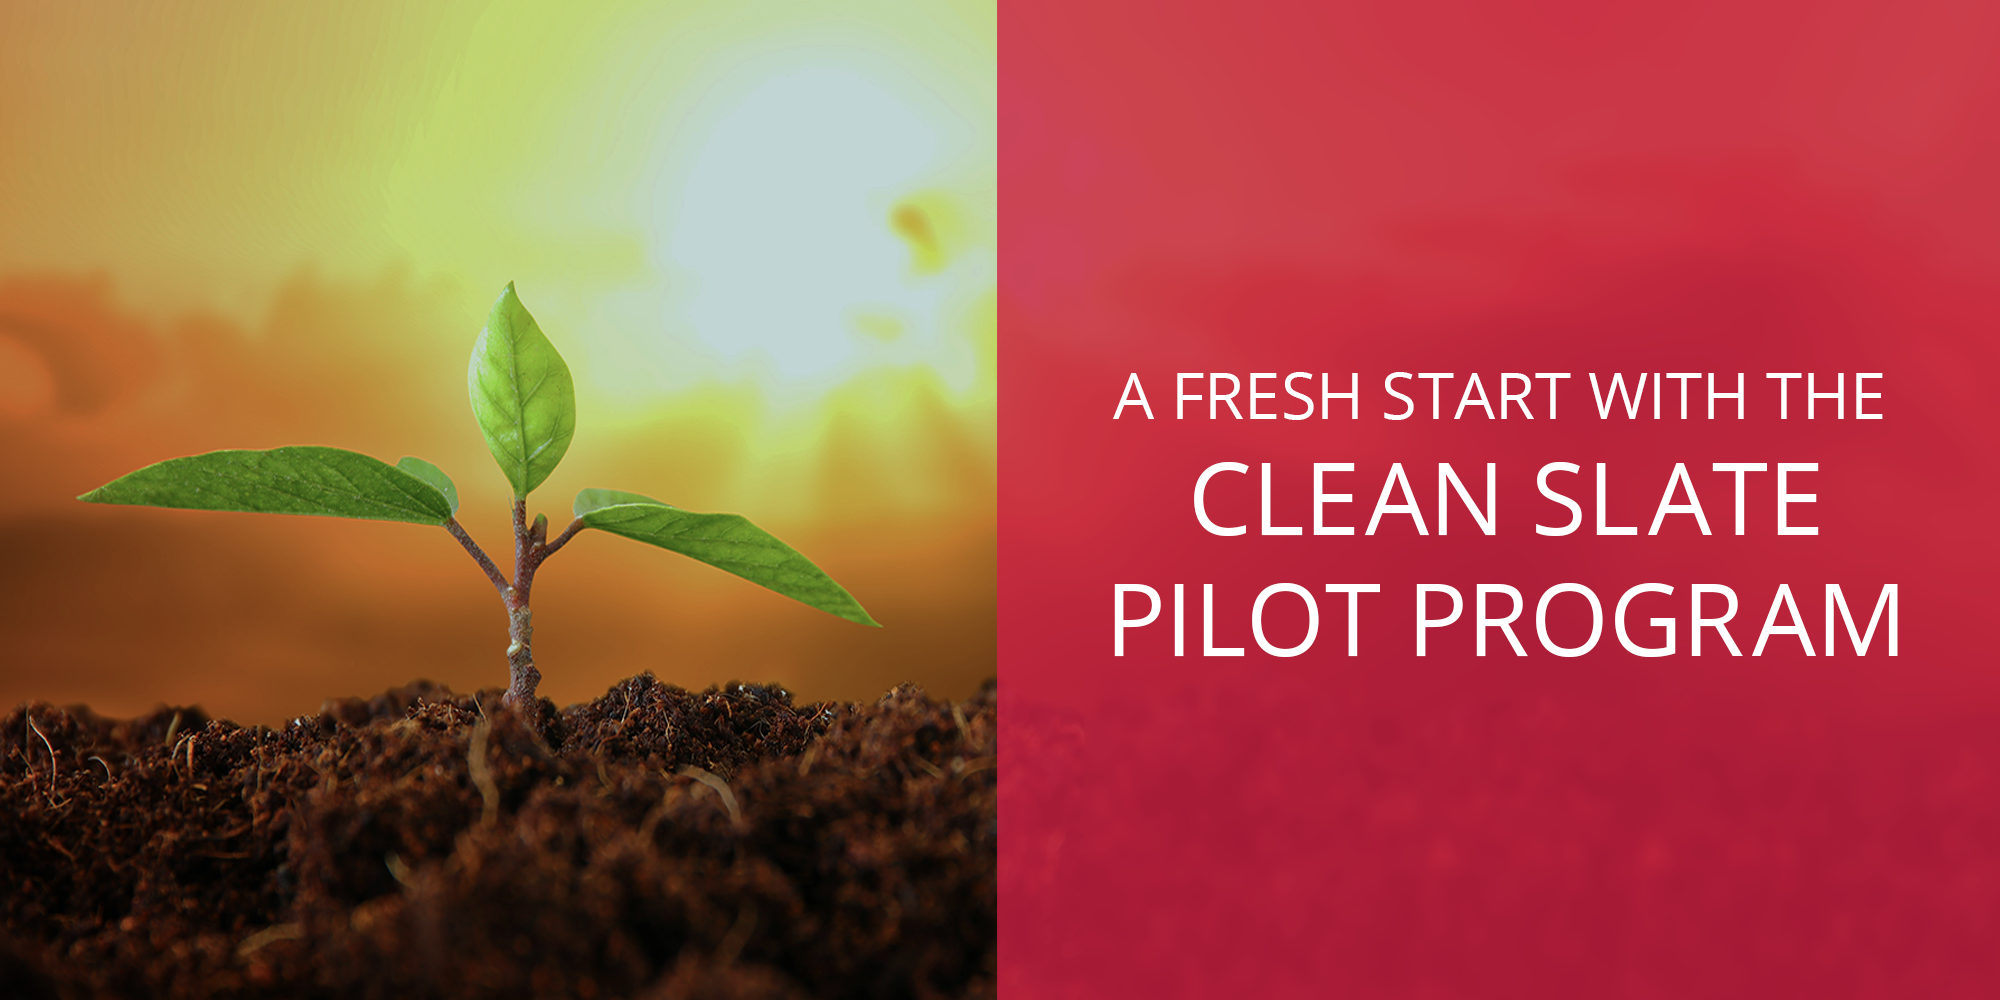 A Fresh Start With the Clean Slate Pilot Program